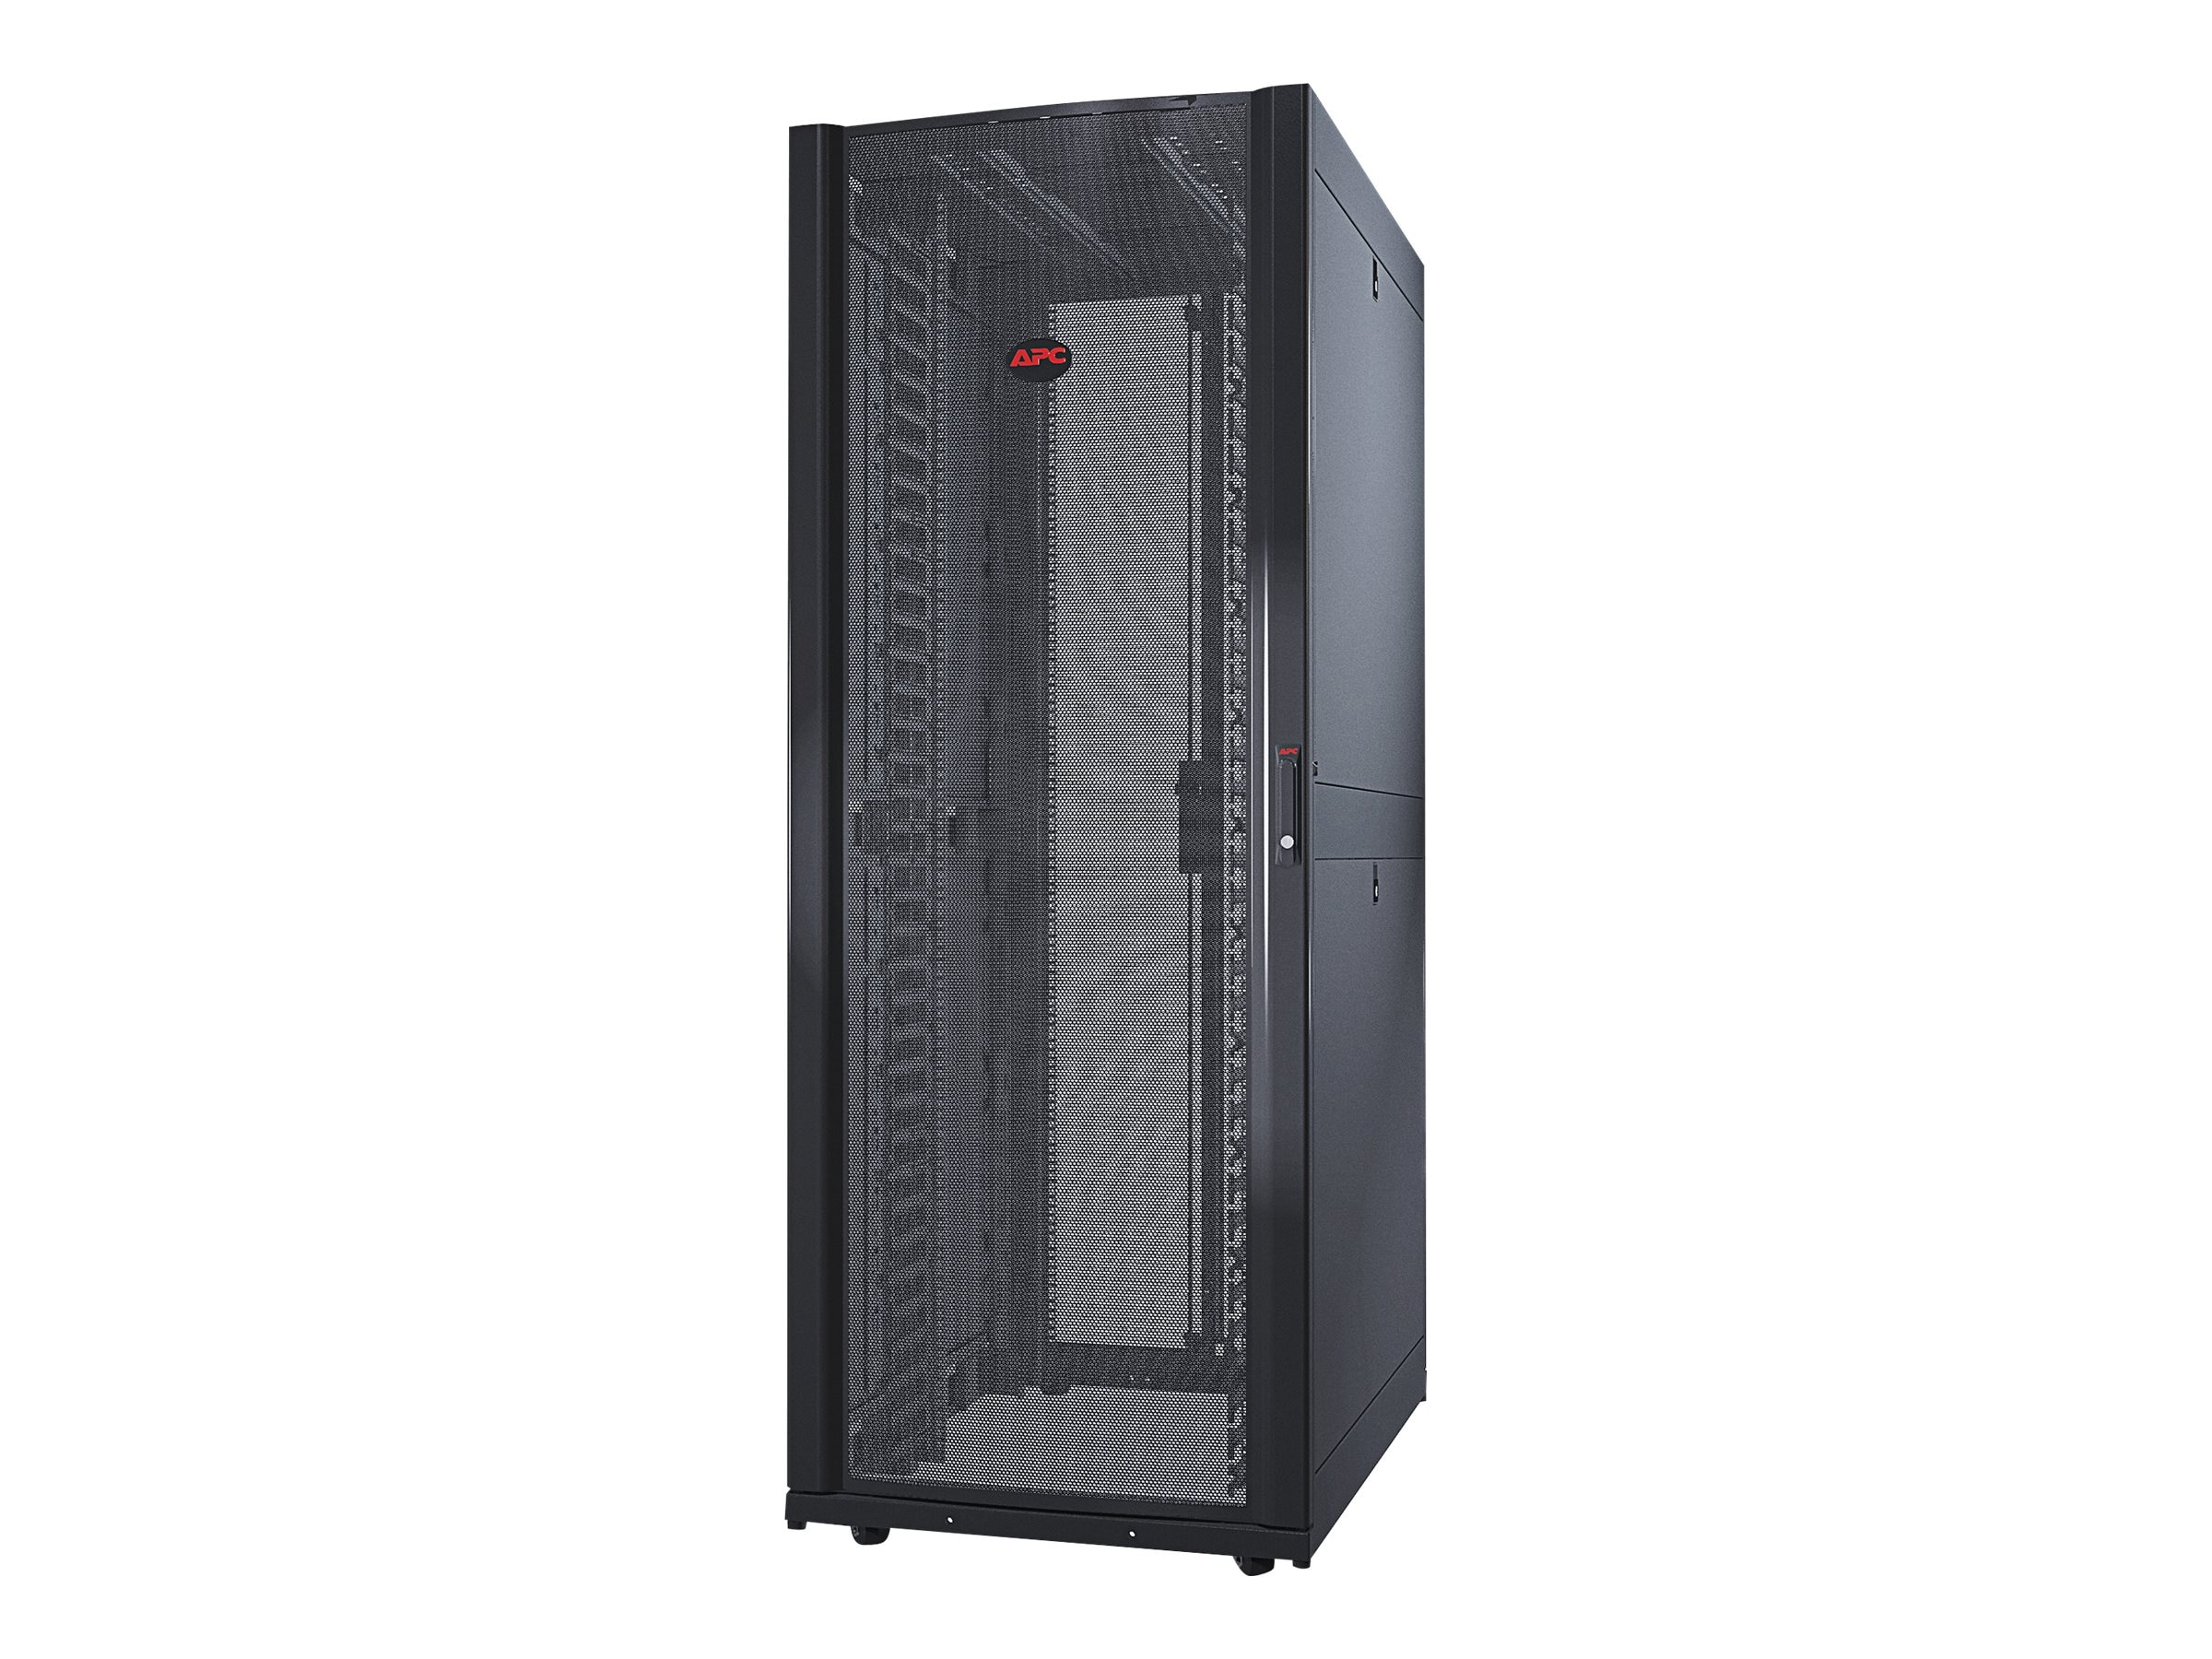 APC NetShelter SX 42U 750mm Wide x 1070mm Deep Networking Enclosure with Sides, AR3140, 10883556, Racks & Cabinets